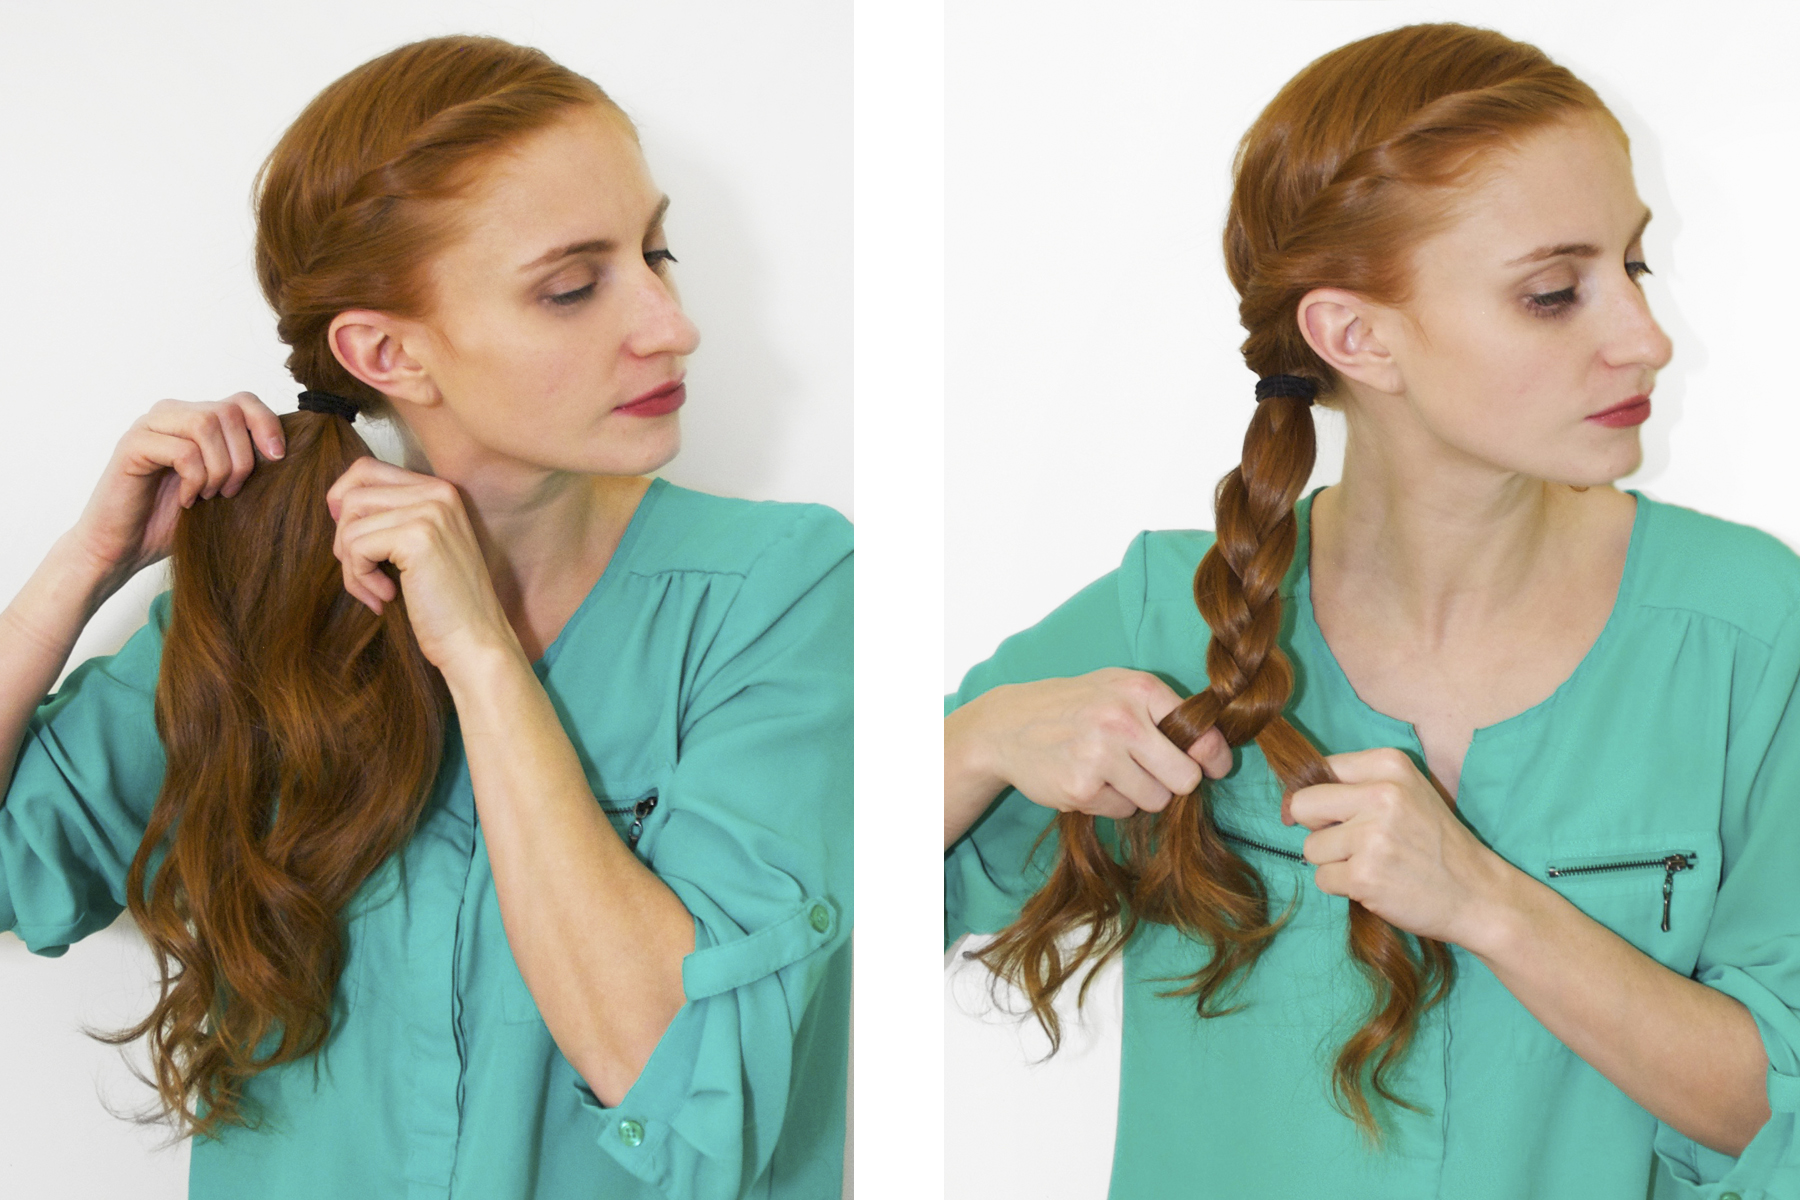 Redhead braiding a side pony tail in green shirt